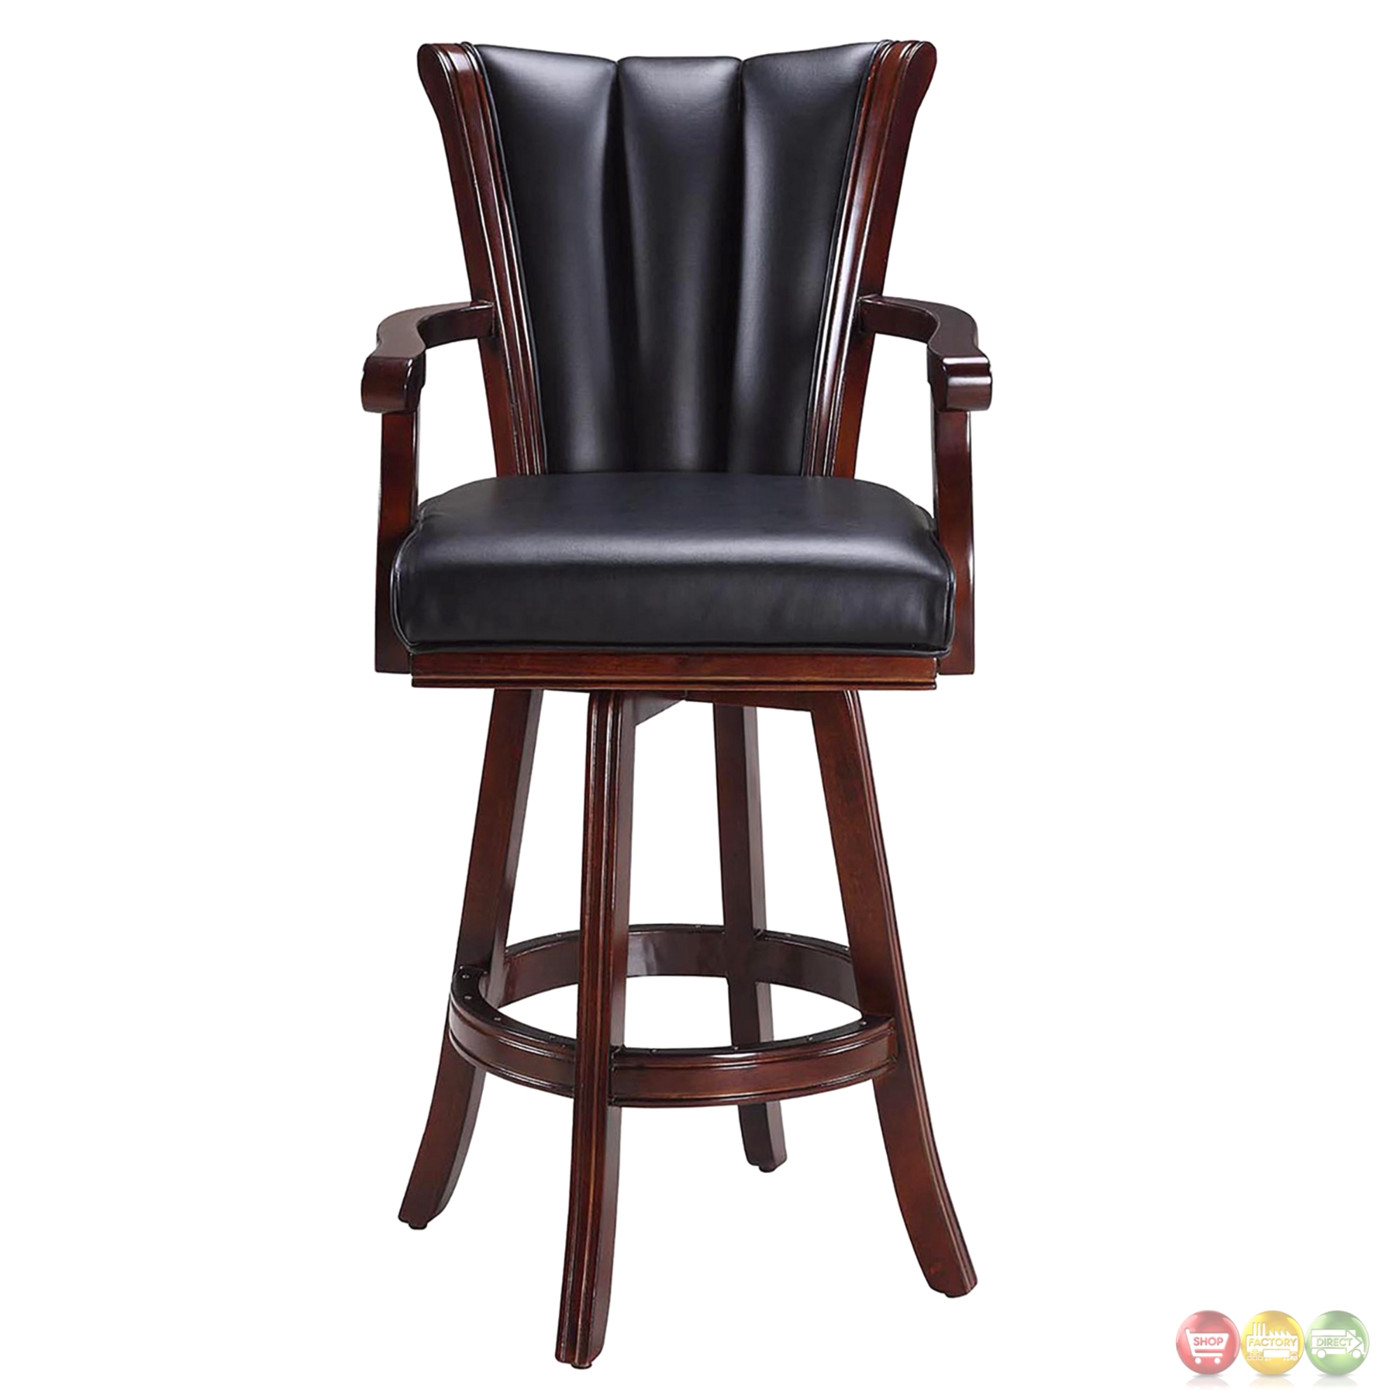 Avondale Swivel Barstool In Black Vinyl And Antique Walnut